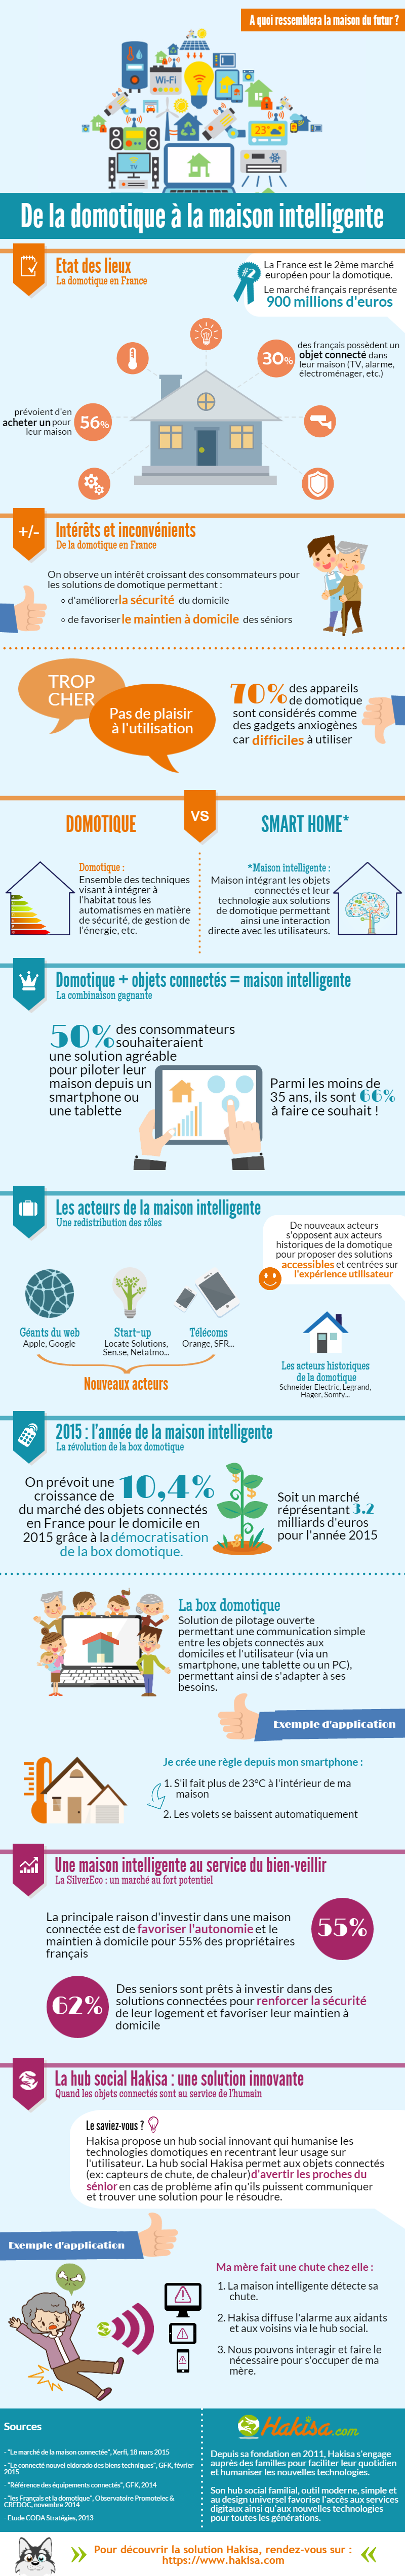 infographie domotique maison intelligente